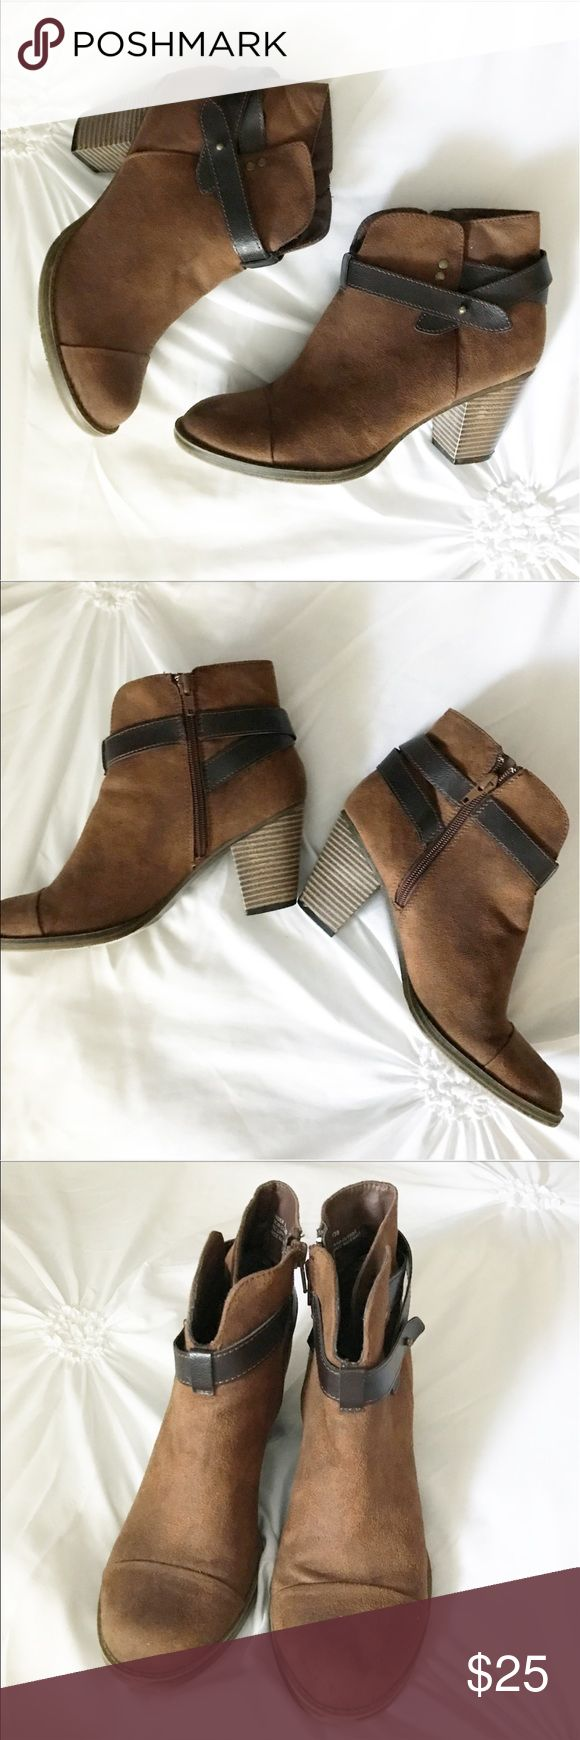 JustFab Faux Suede Camel Strappy Ankle Booties These brown festival style booties are the perfect boot! Perfect for just about any occasion! A lighter brown with fun overlapping dark brown strap details. Side zippers. Heels. EUC! JustFab Shoes Ankle Boots & Booties